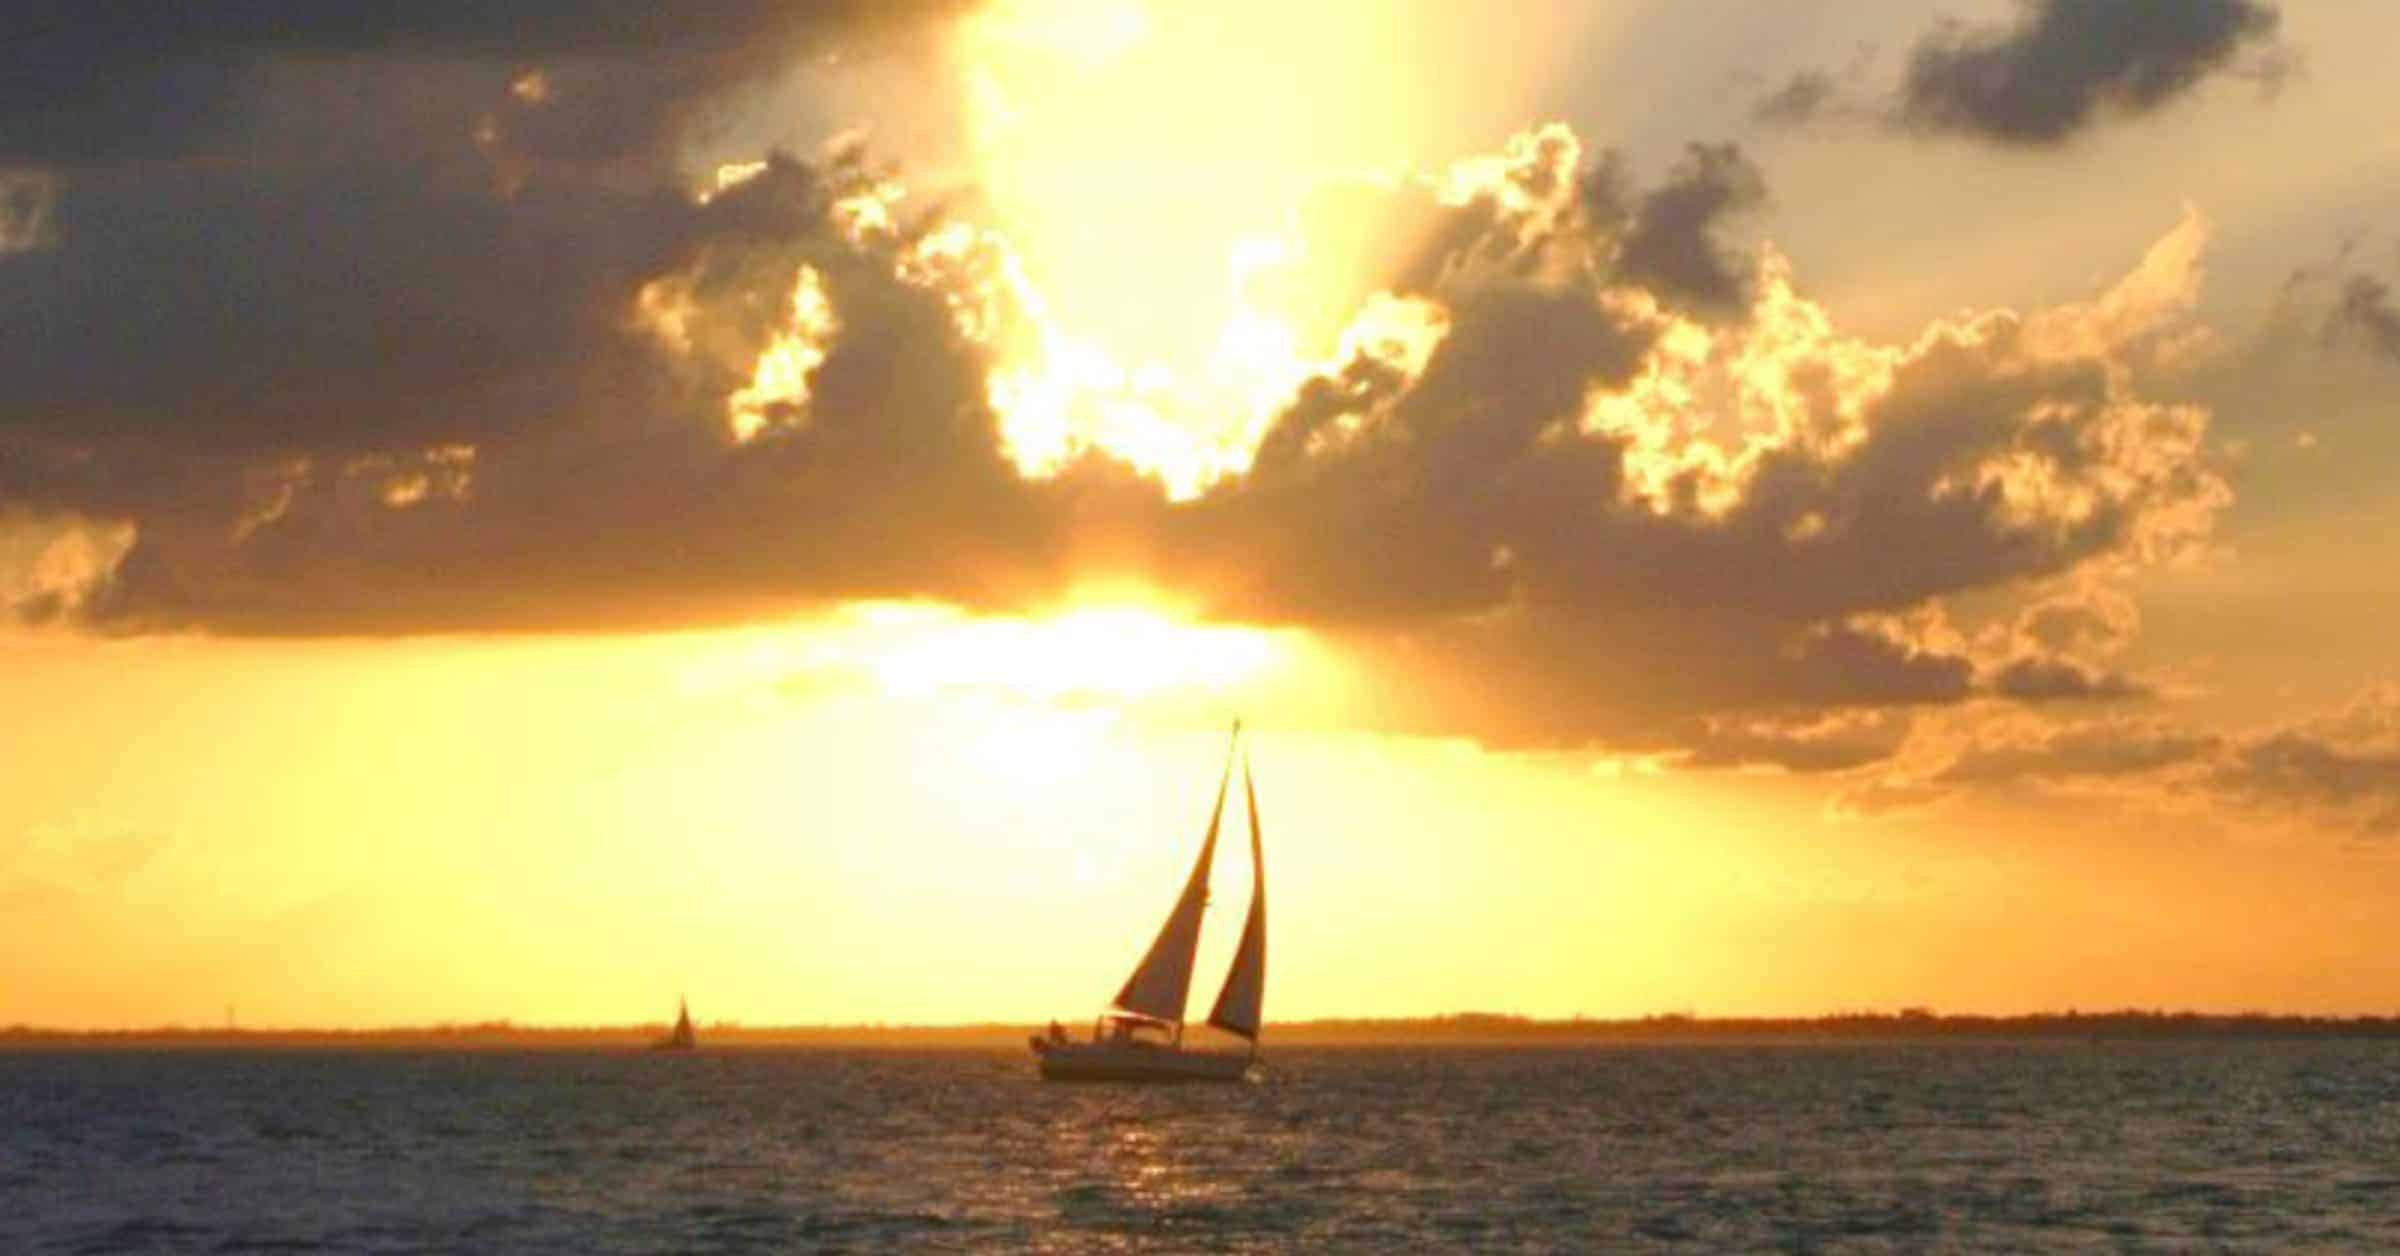 Sailboat image from All Weather Retirement cover